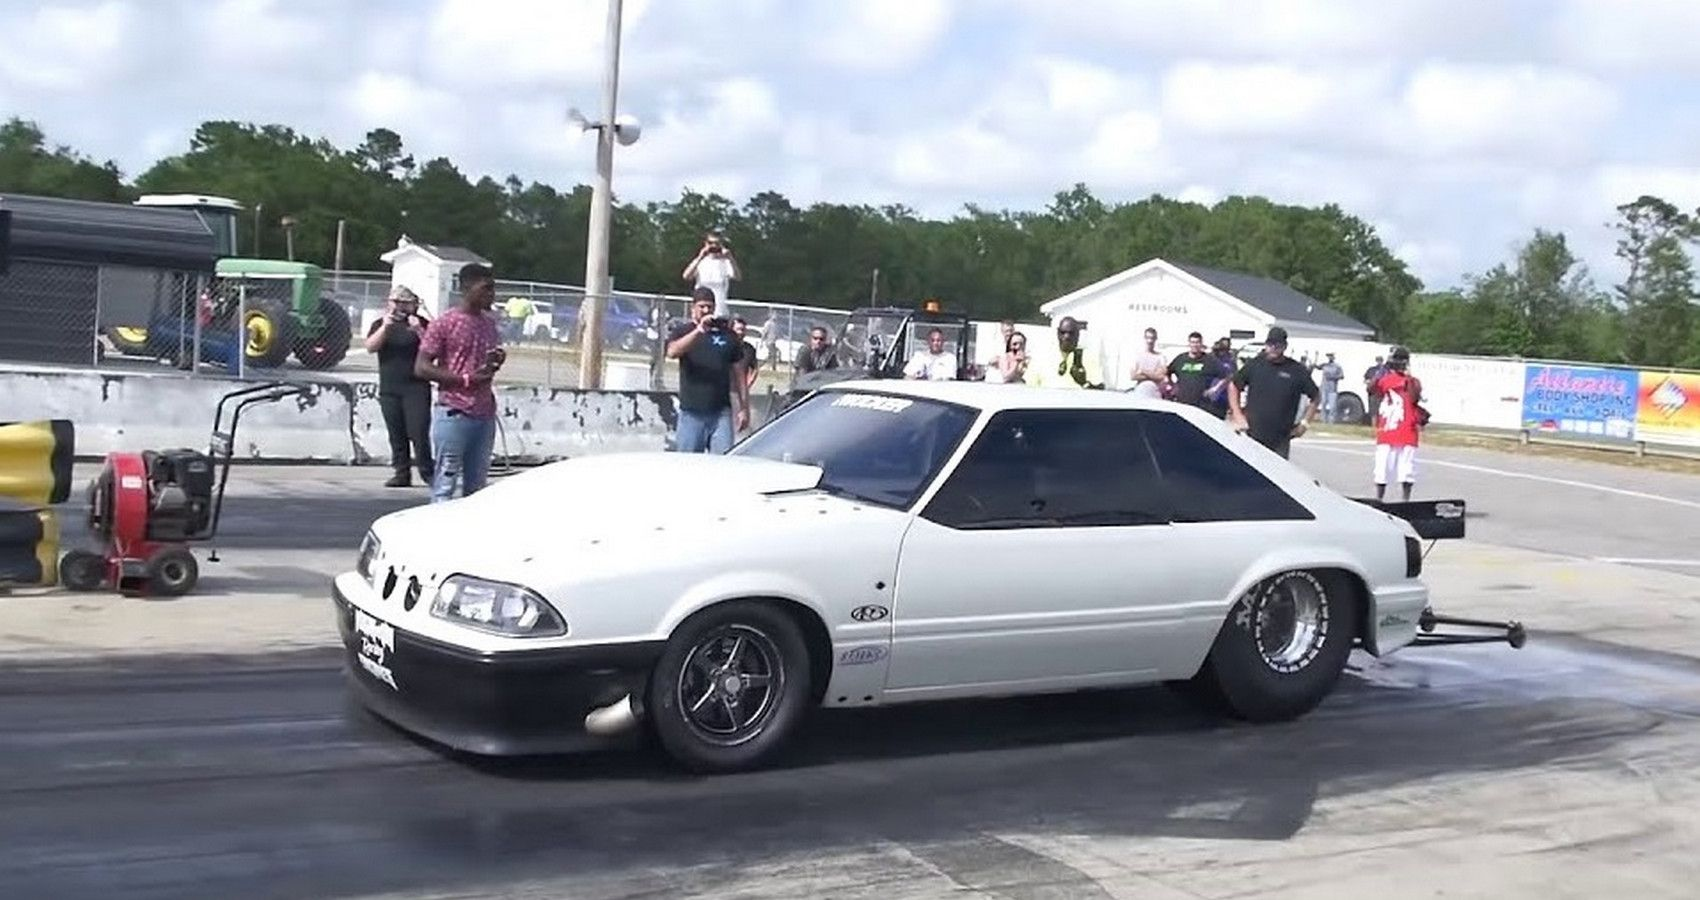 These Are The Sickest Cars Ever Featured On Street Outlaws